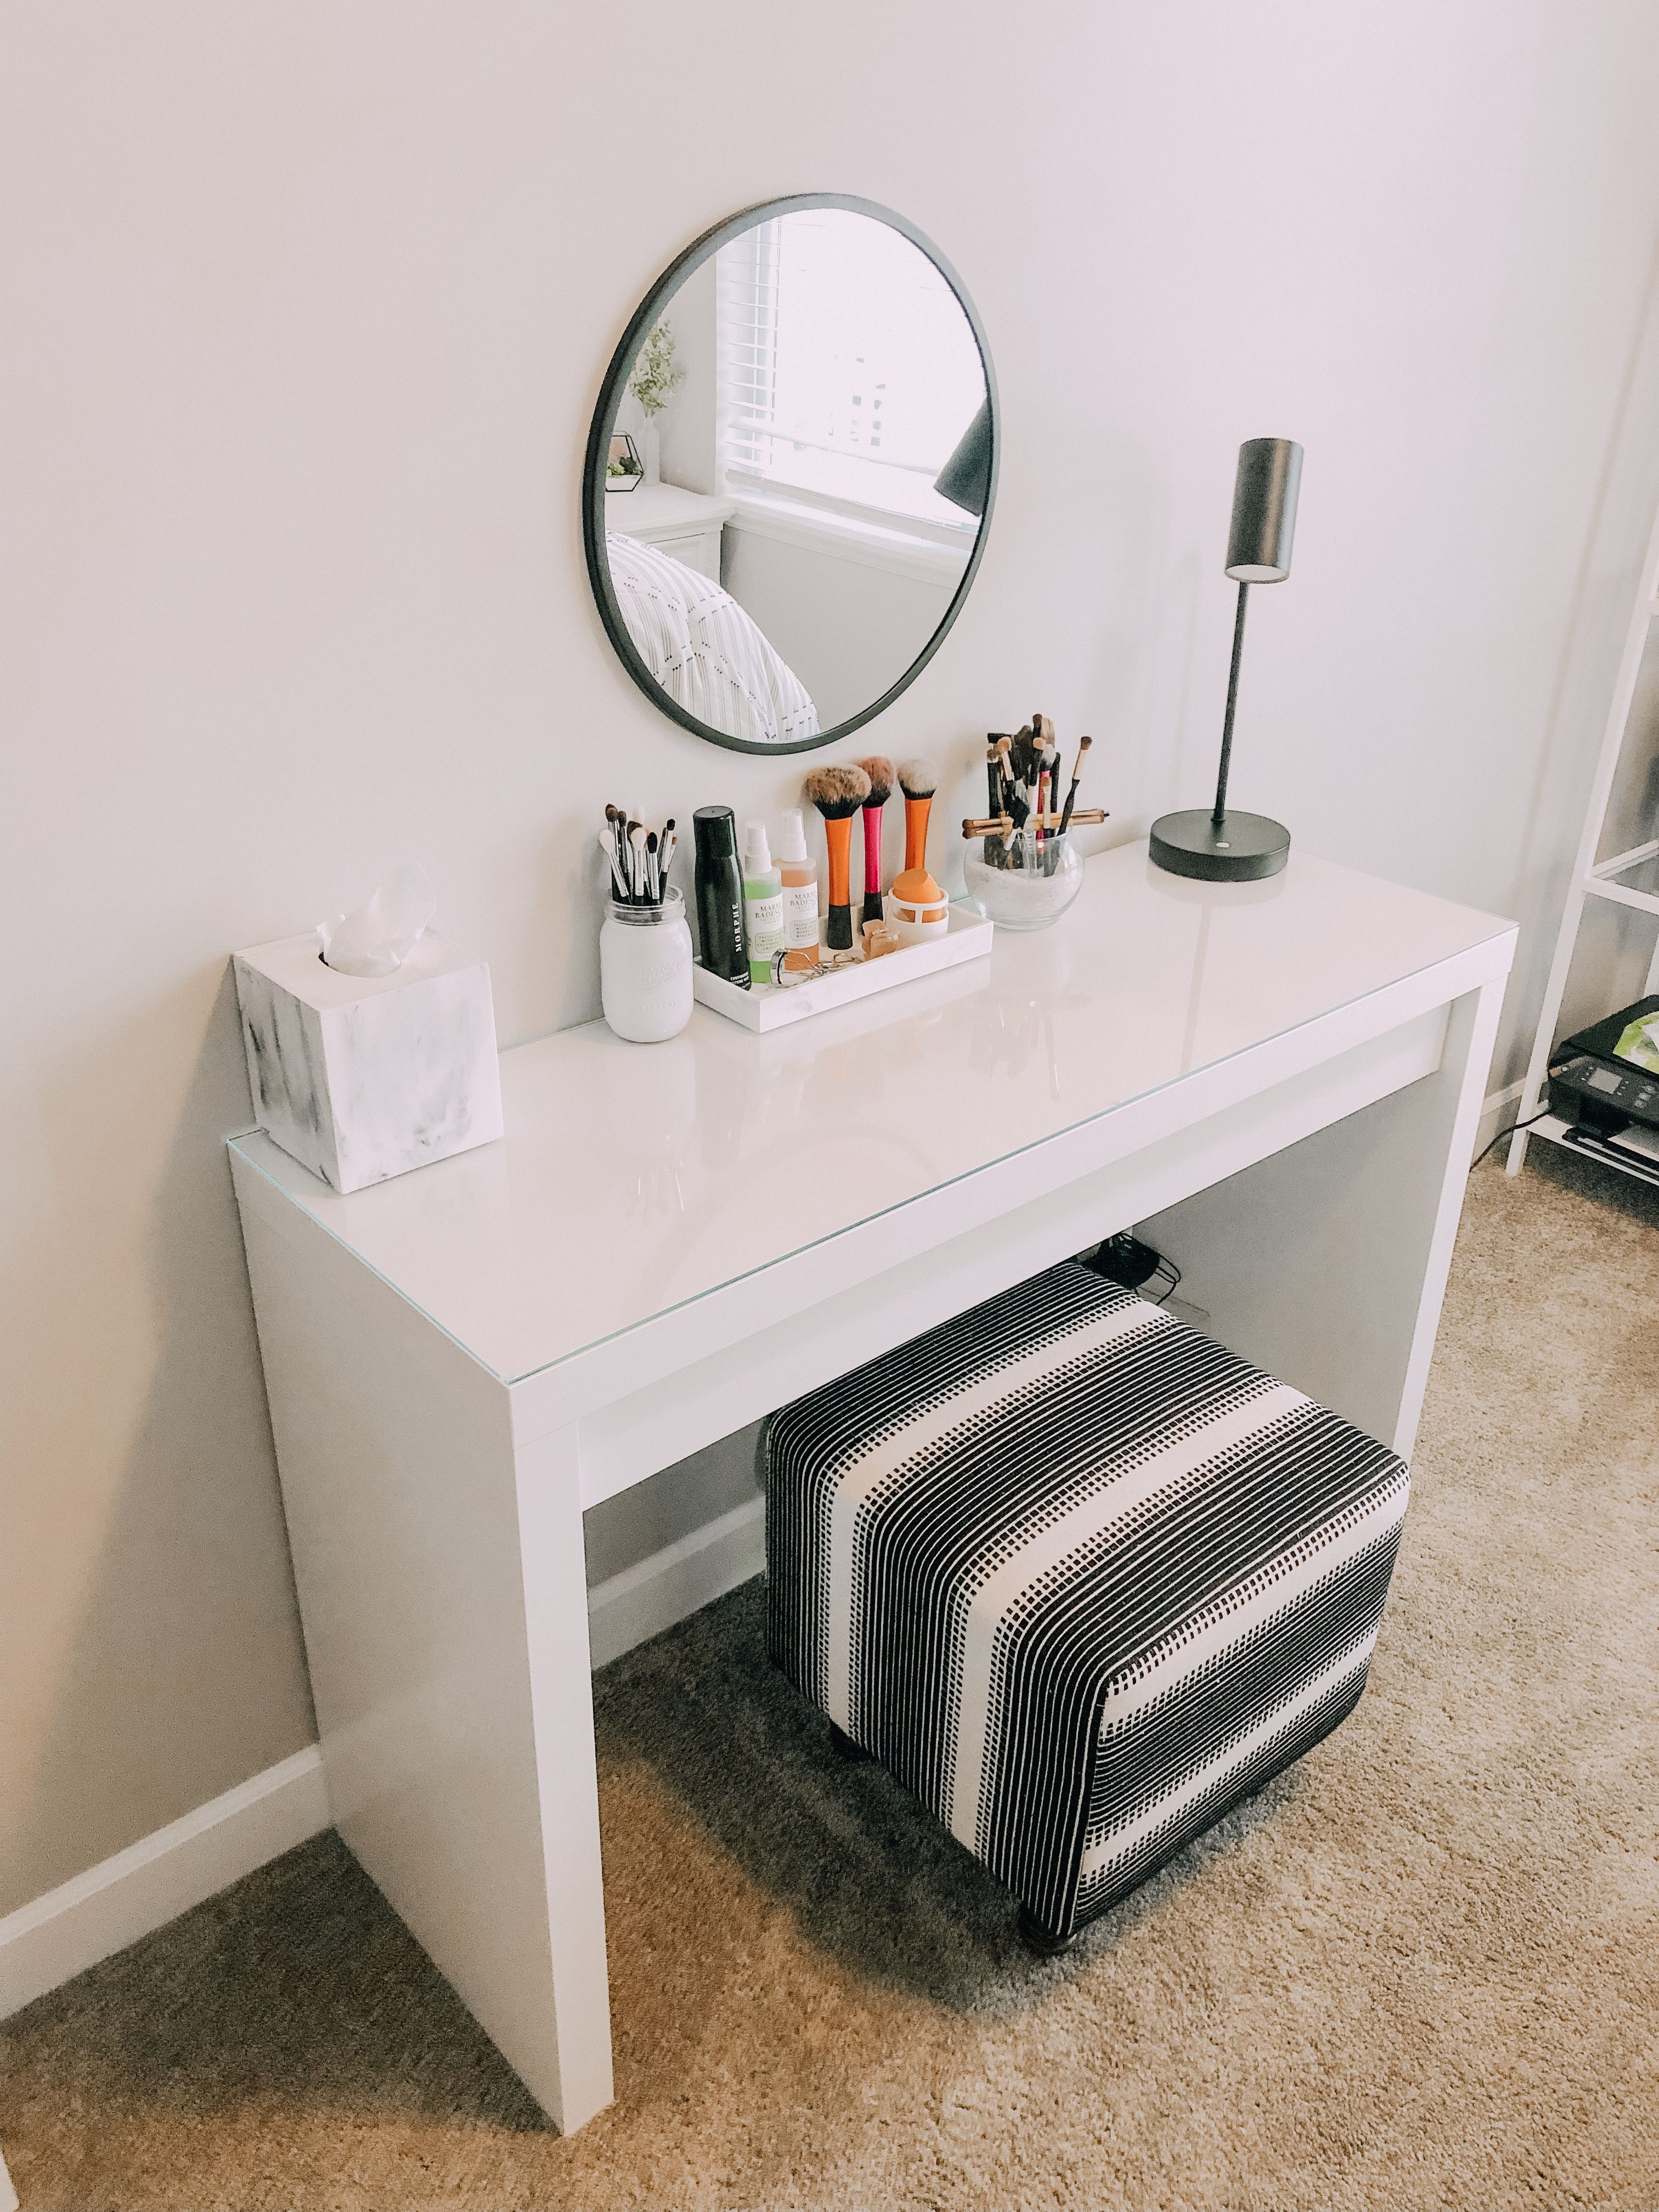 Malm Dressing Table White 47 1 4x16 1 8 Ikea Dressing Room Design Malm Dressing Table Bedroom Vanity